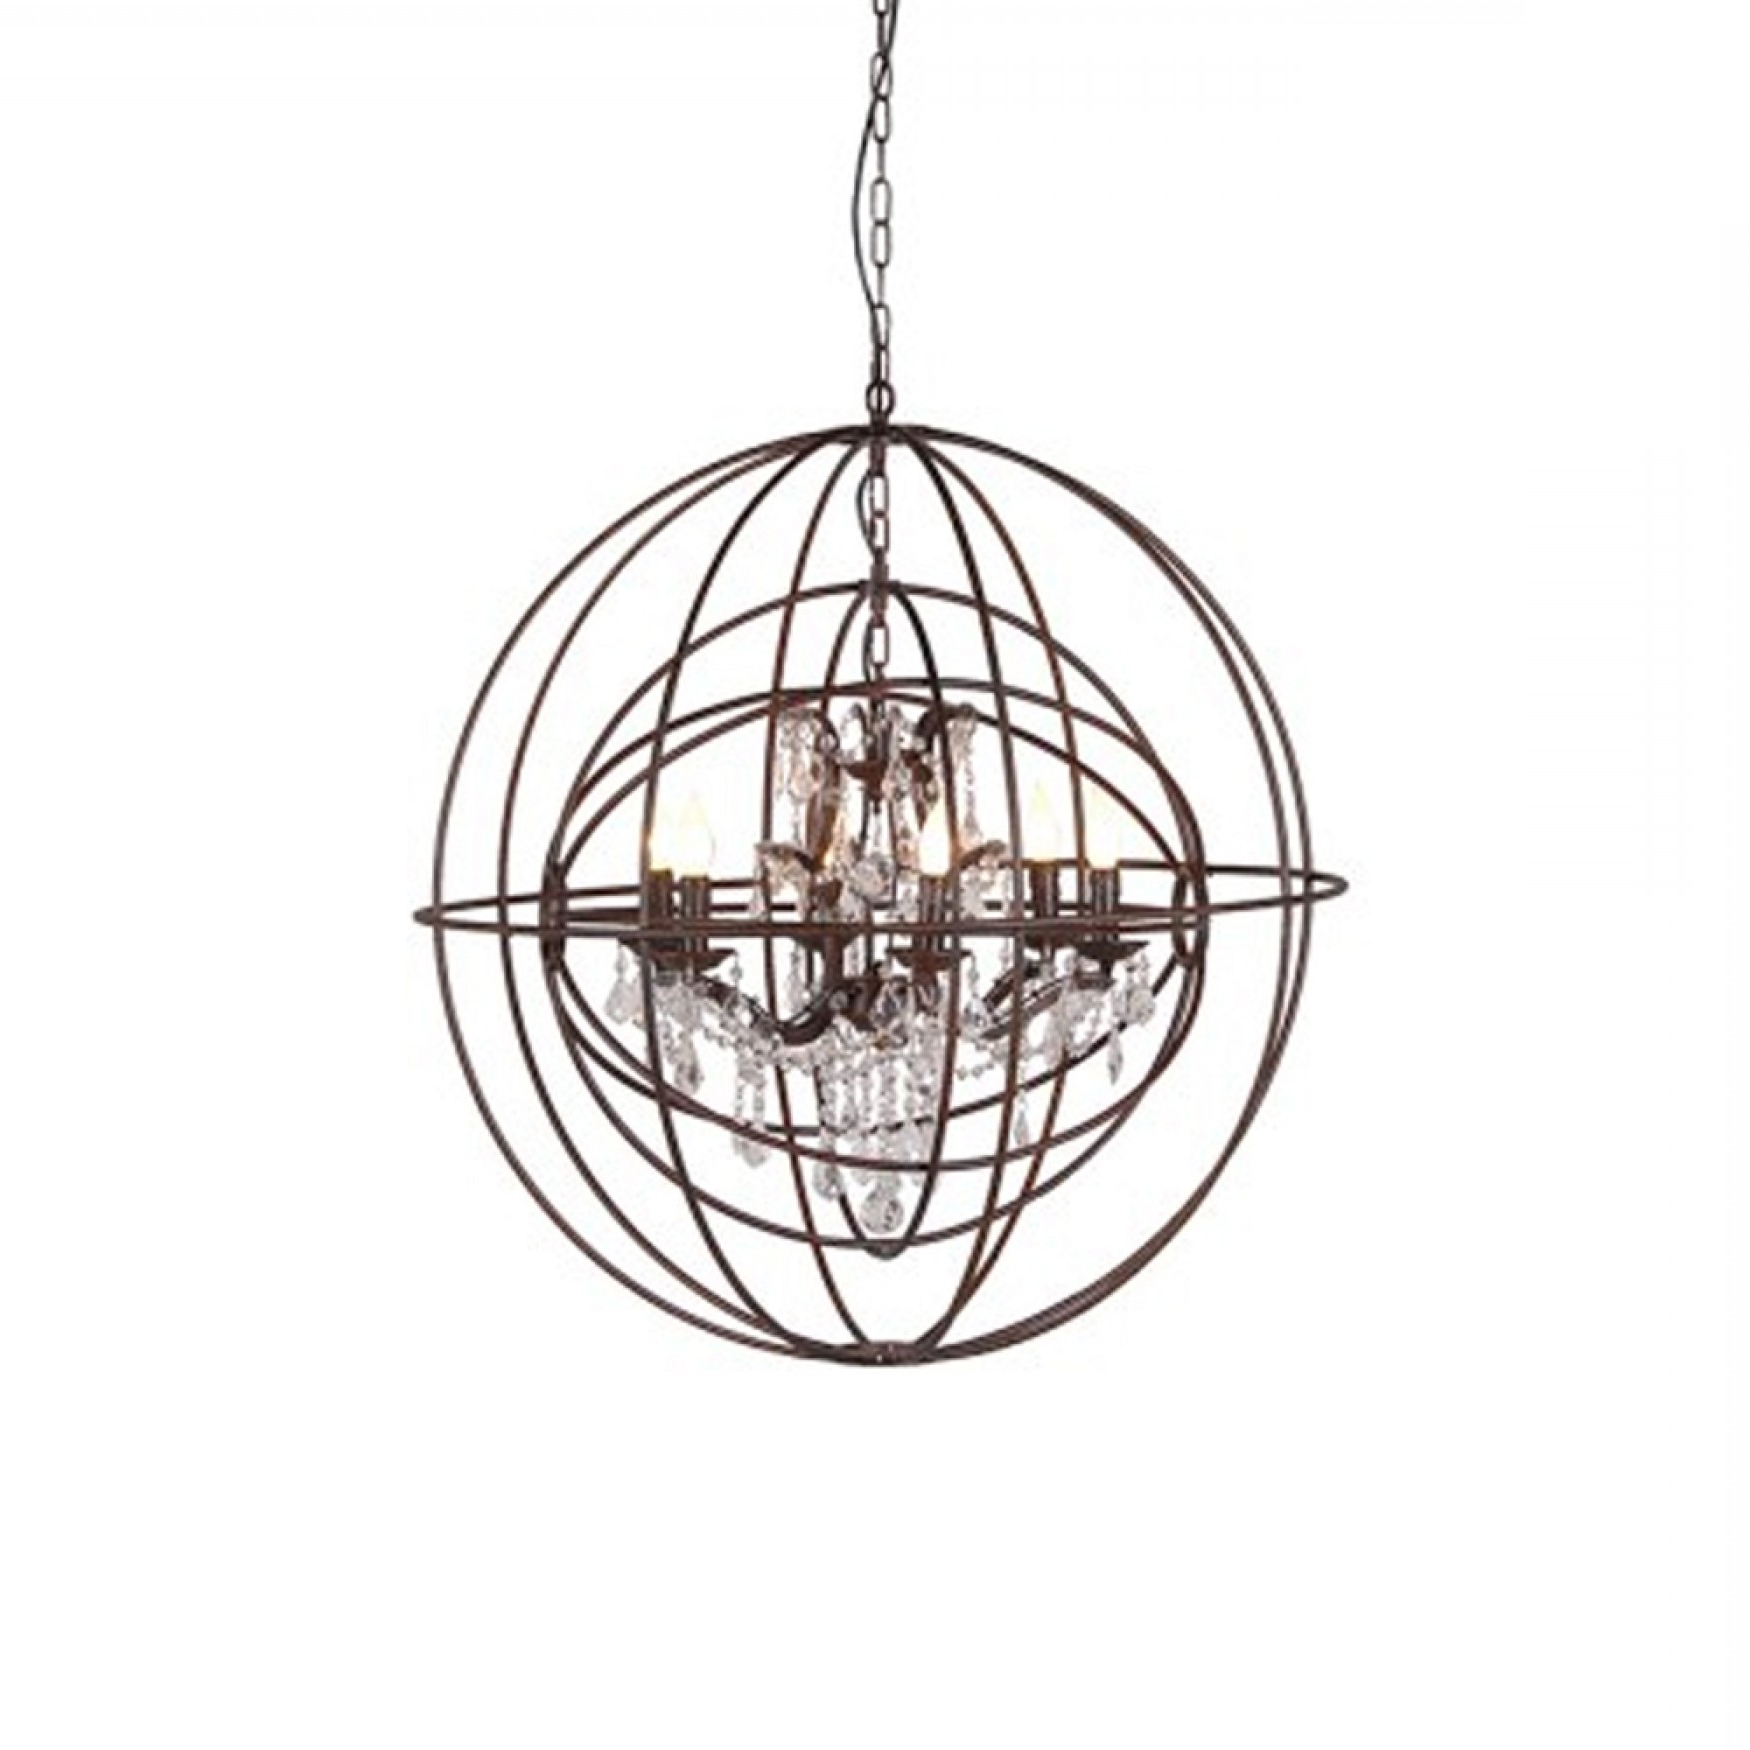 Well Liked Metal Sphere Chandelier Throughout Metal Sphere Chandelier (View 11 of 20)